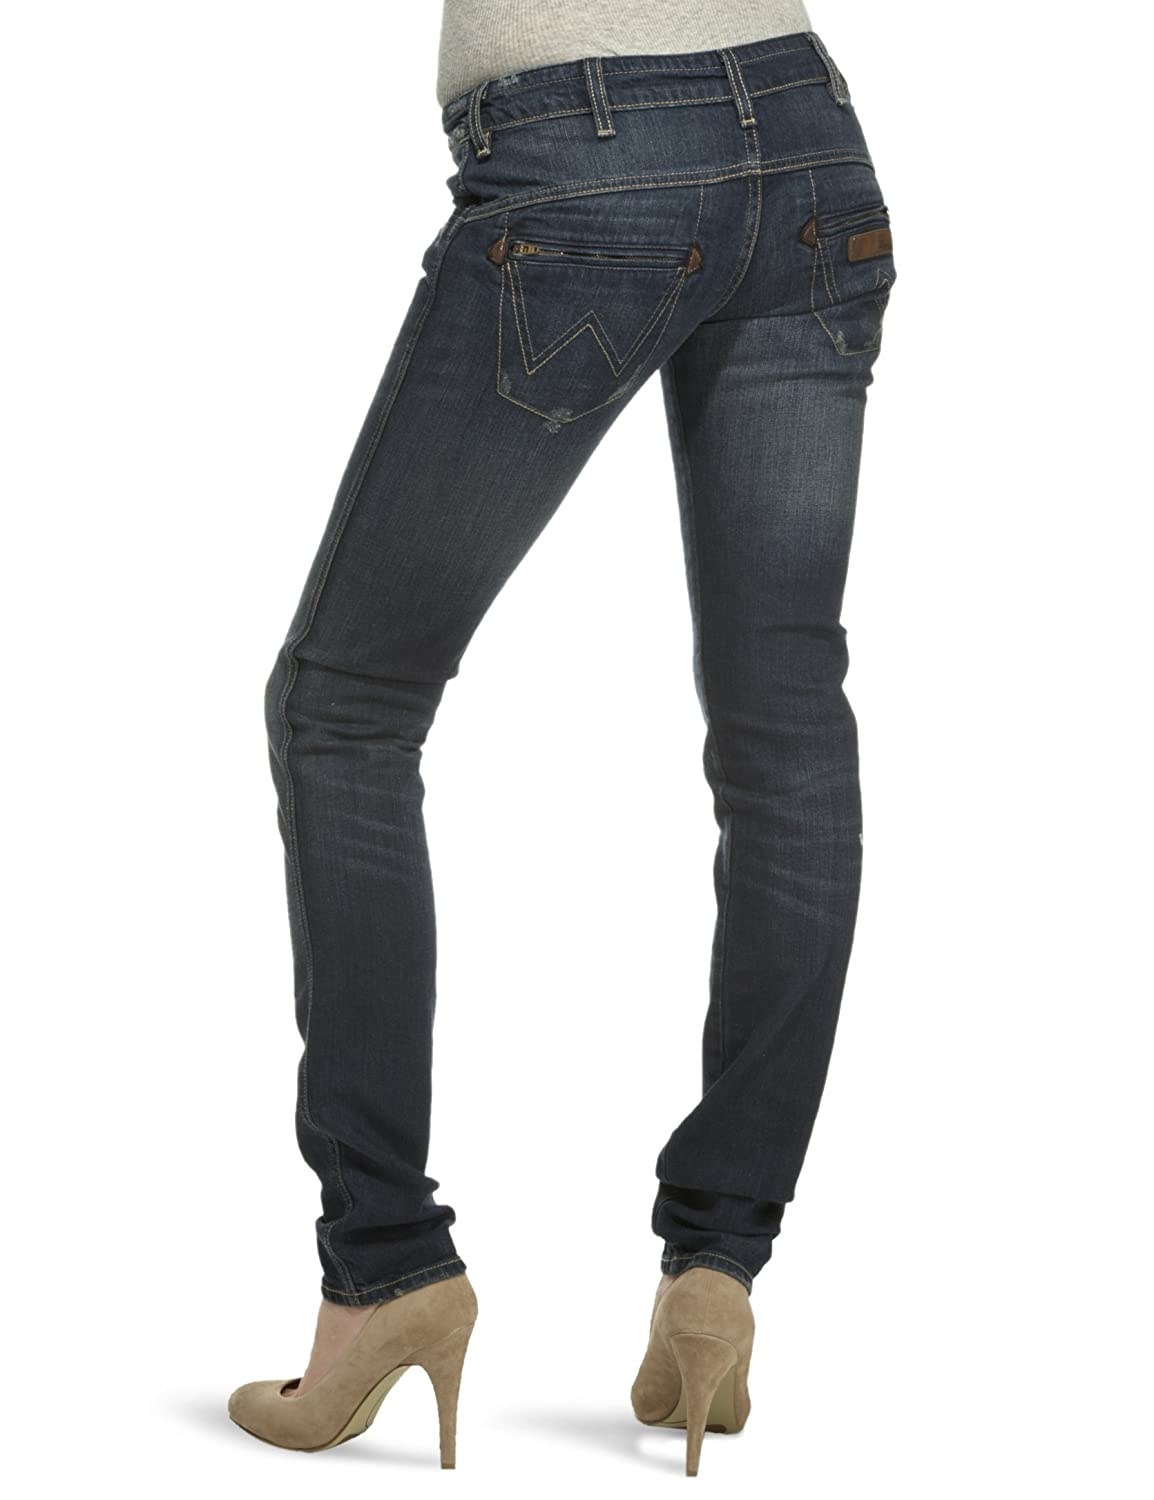 Order Womens Molly Damaged Blue Jeans Wrangler Clearance Get Authentic 39lGF